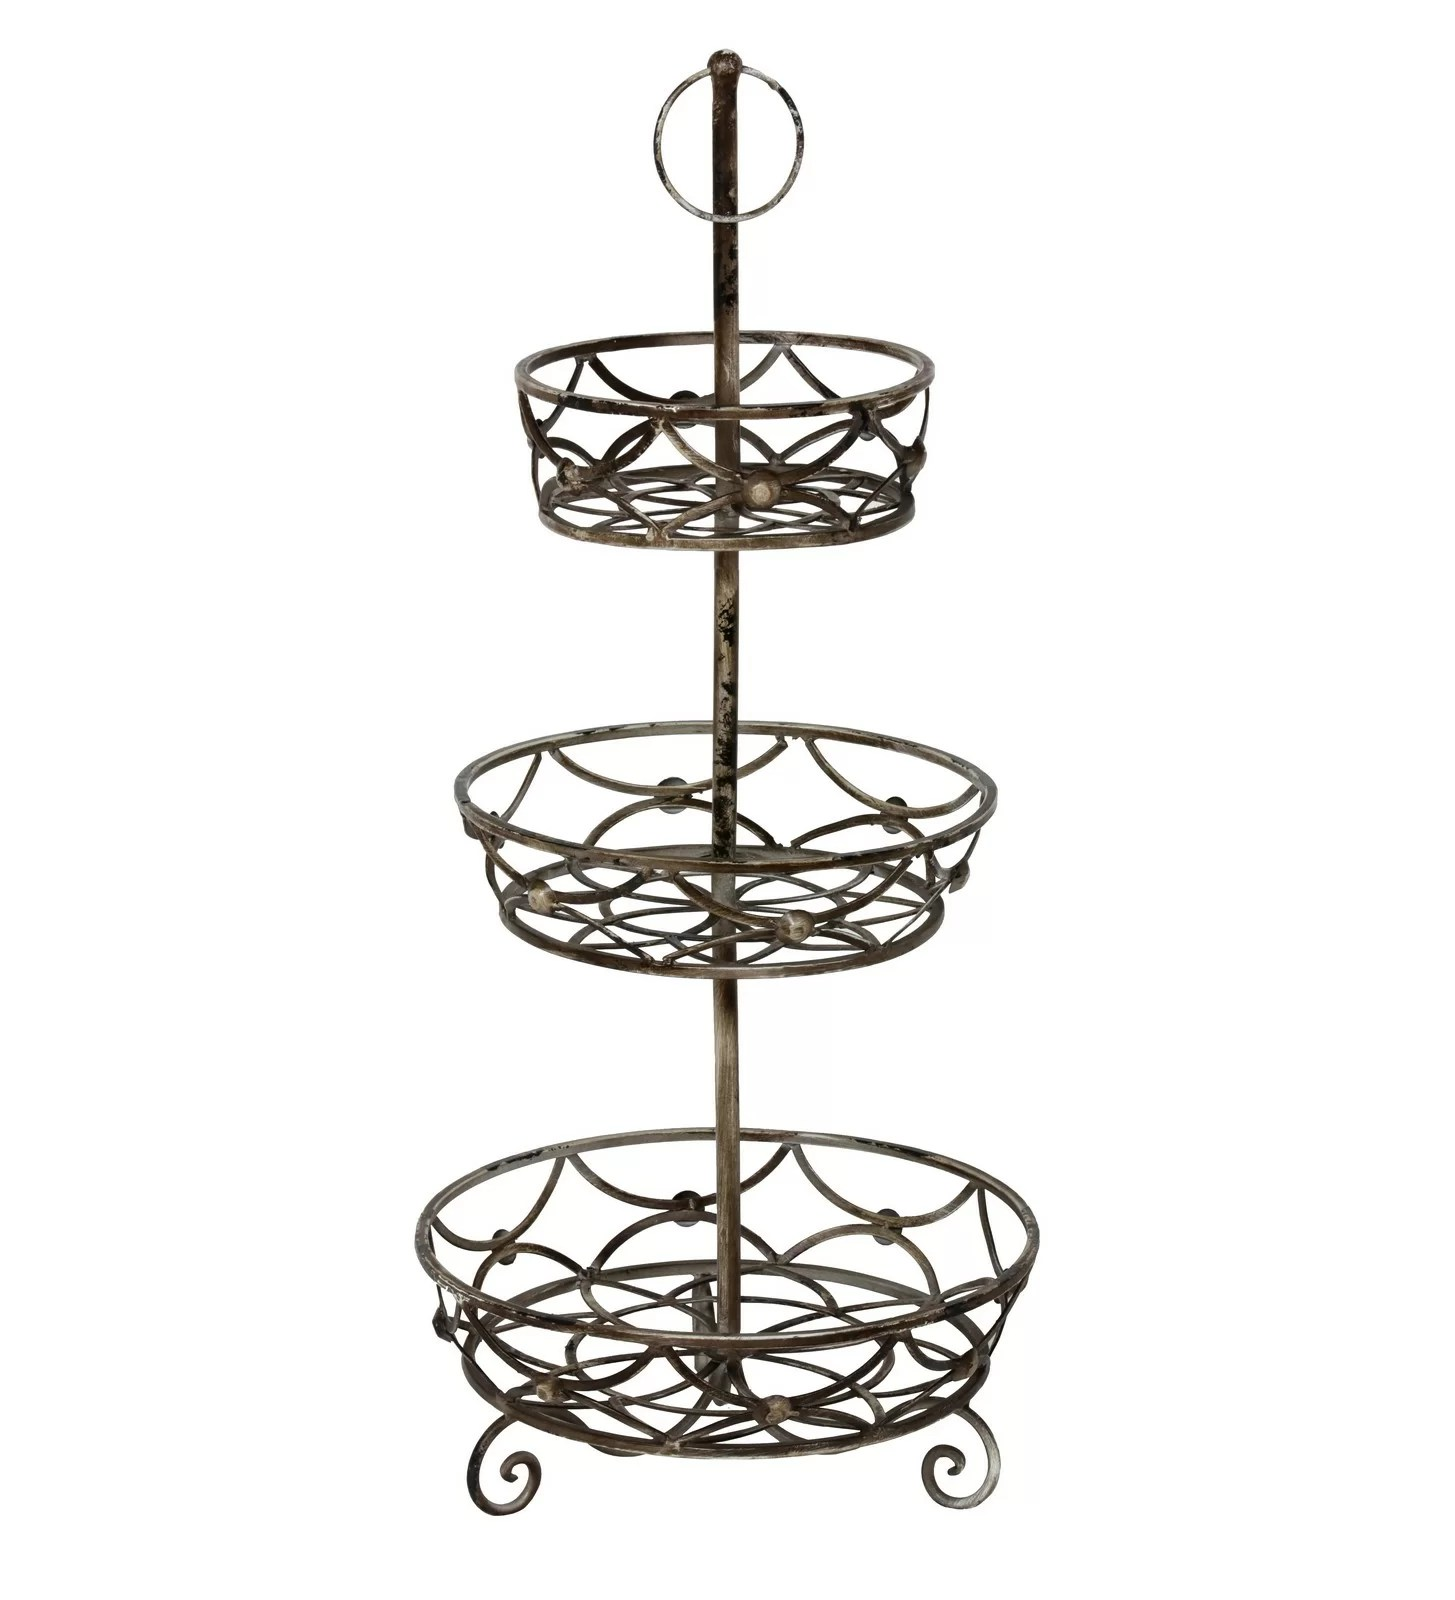 Table Top Fruit Basket New Iron 3 Tier Scroll Basket Stand 30 Quot Decorative Metal